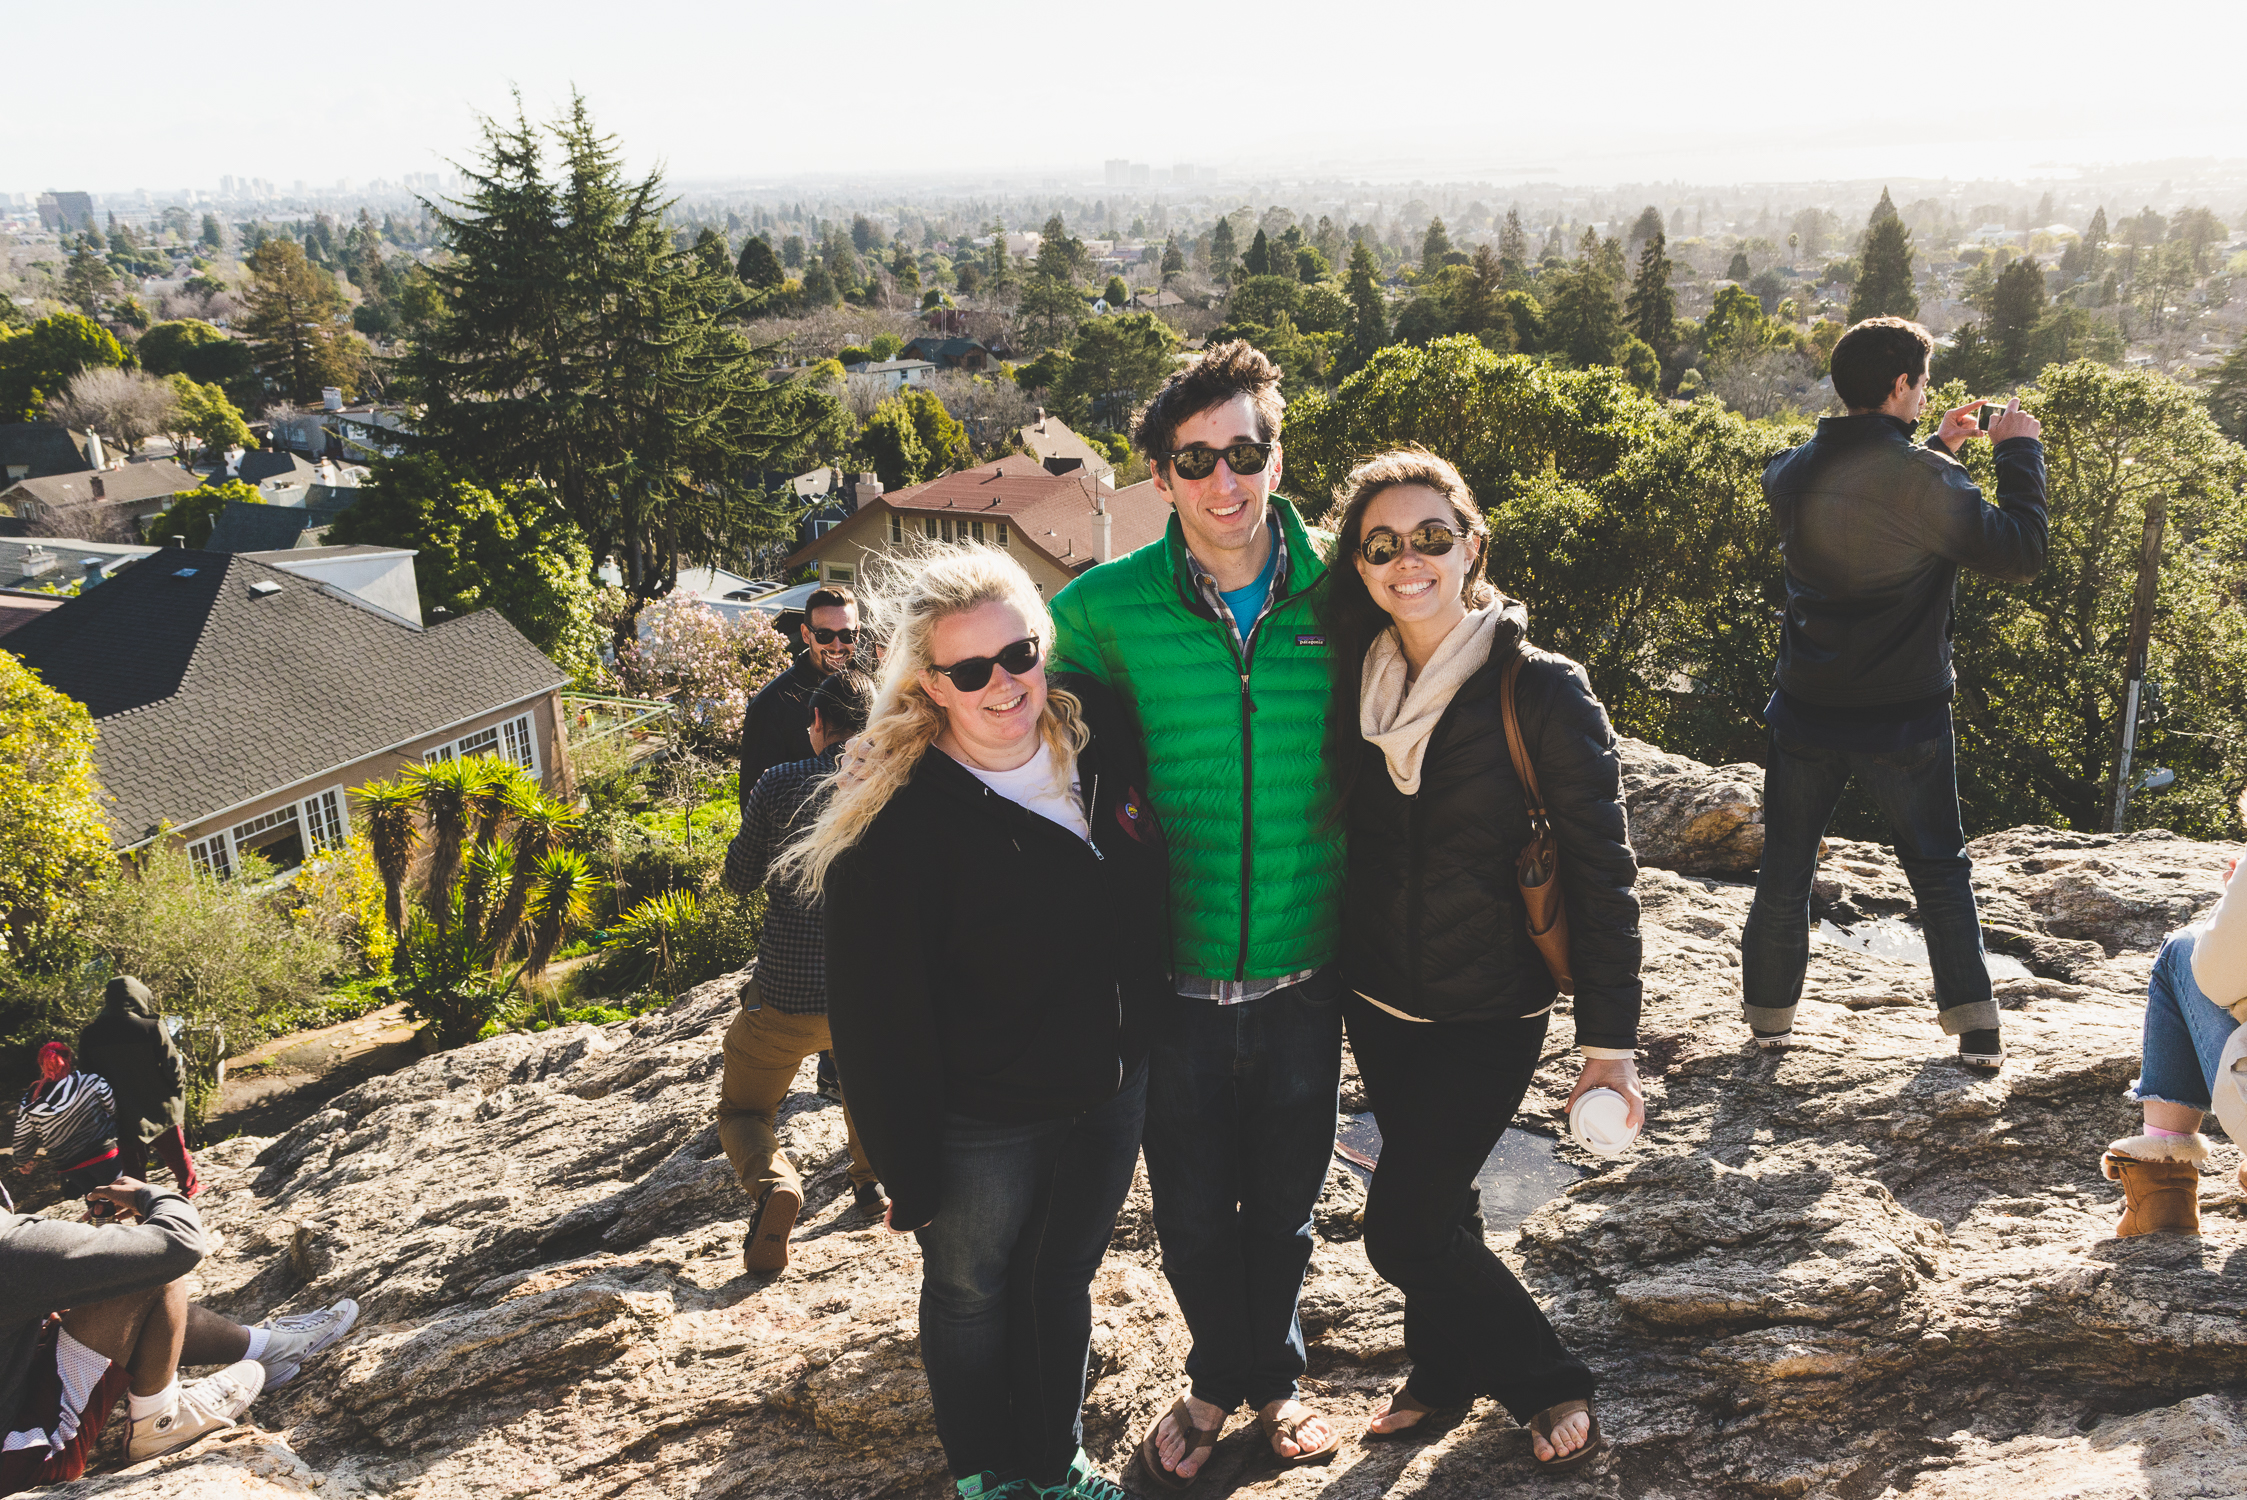 On top of Indian Rock with my cousin Sam and his fiance Katherine / 1/31/16 / Berkeley, CA